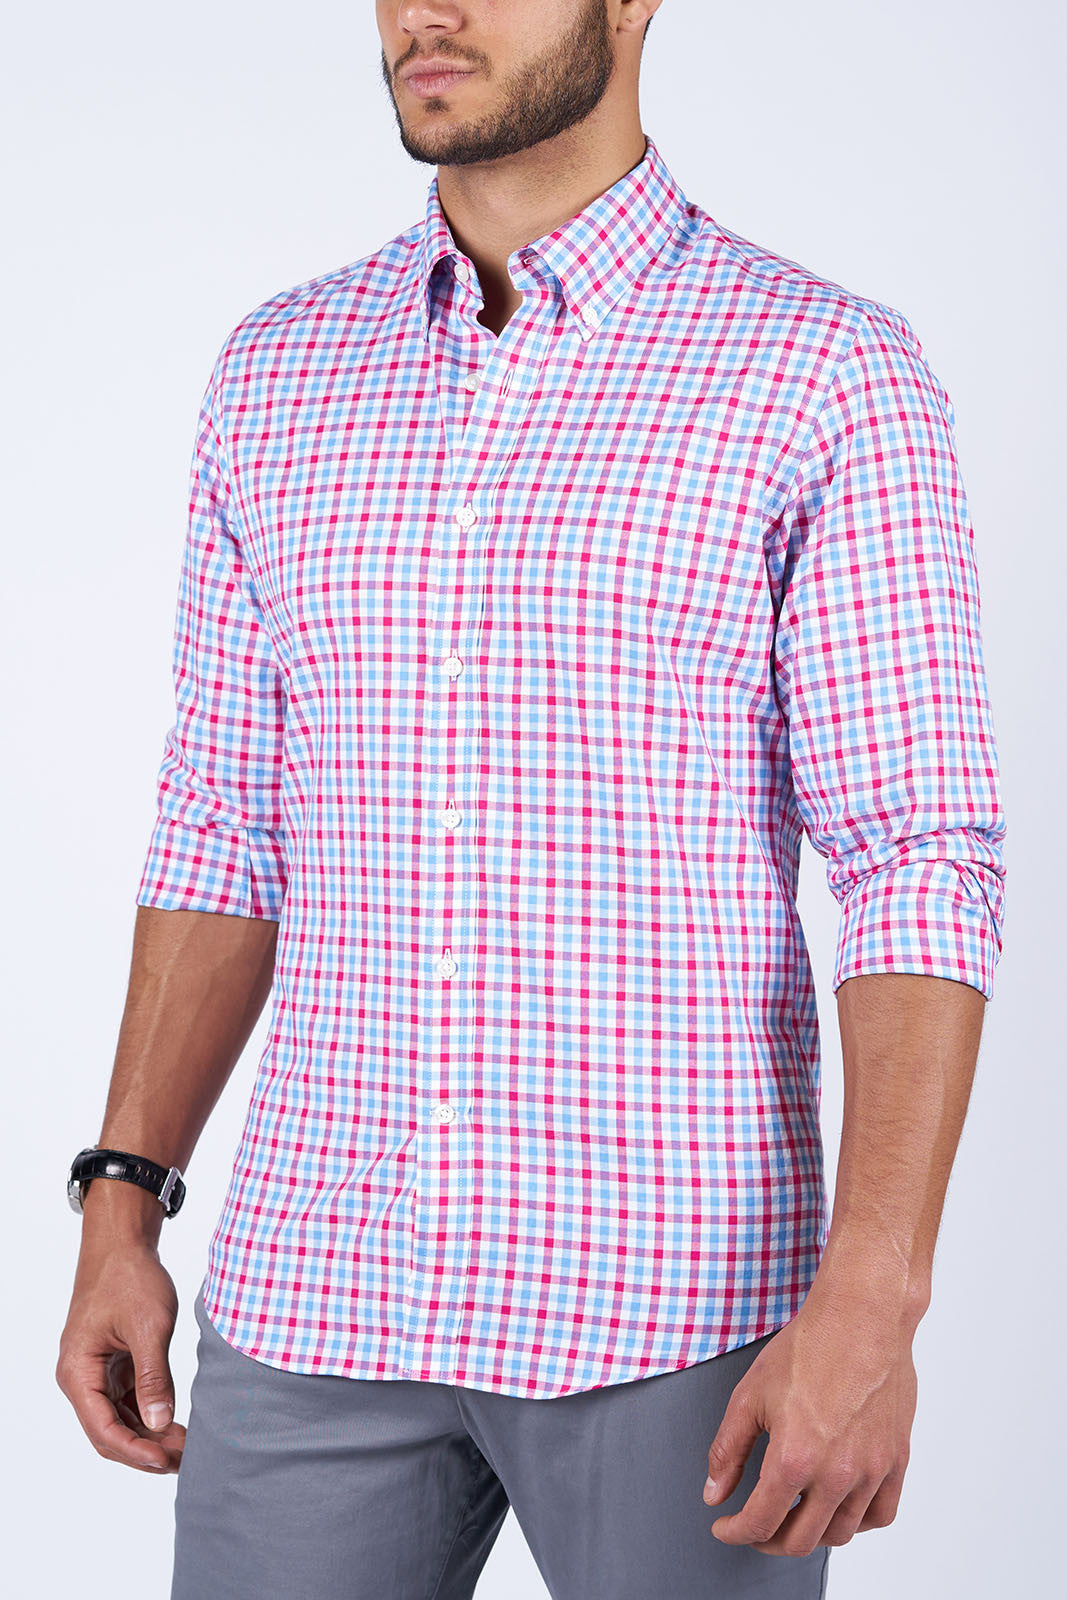 Red and Blue Gingham Oxford: Semi-Spread Collar, Barrel Cuff